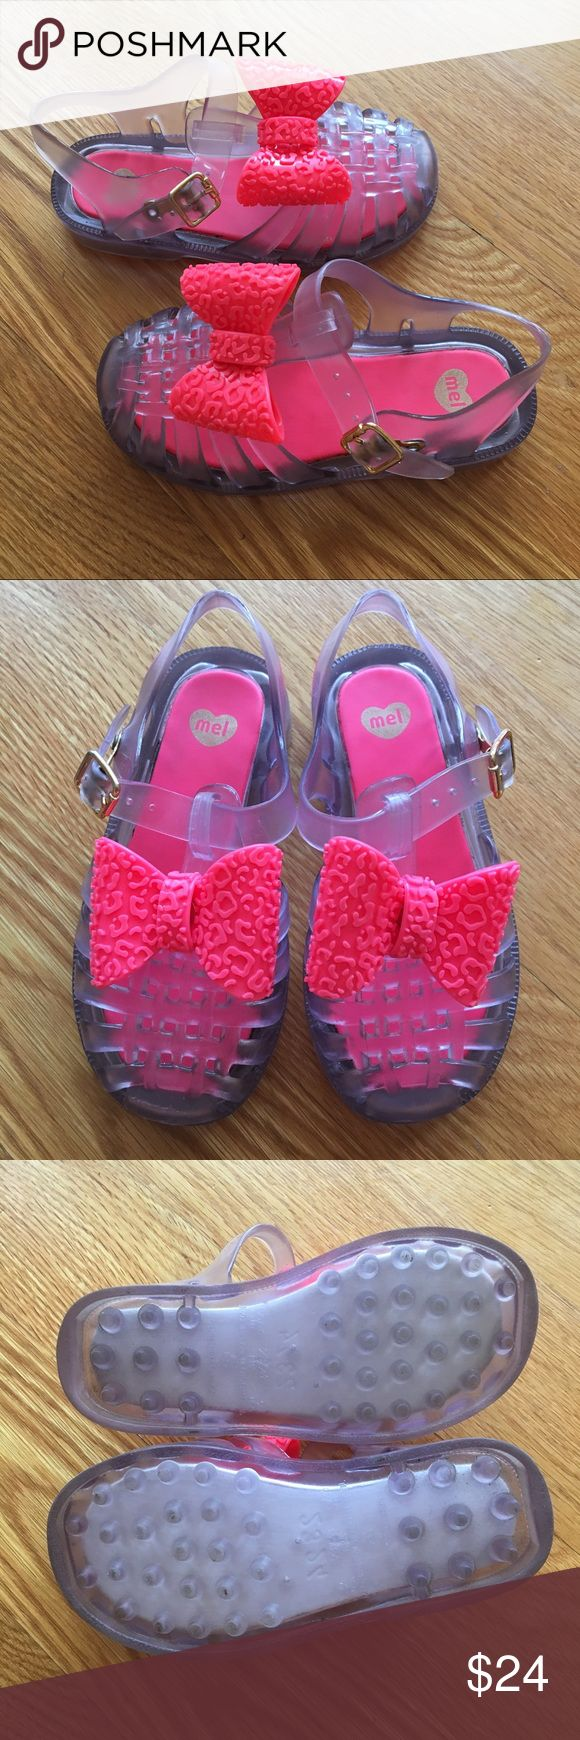 Mini Melissa Pink Bow Sandals Size 9 Cute and pretty Mini Melissa clear jelly sandals with pink bows. Excellent condition only worn few times indoors. PVC sandal with lightly cushioned footbed. Made in Brazil. Fruity smell 💕 Mini Melissa Shoes Sandals & Flip Flops